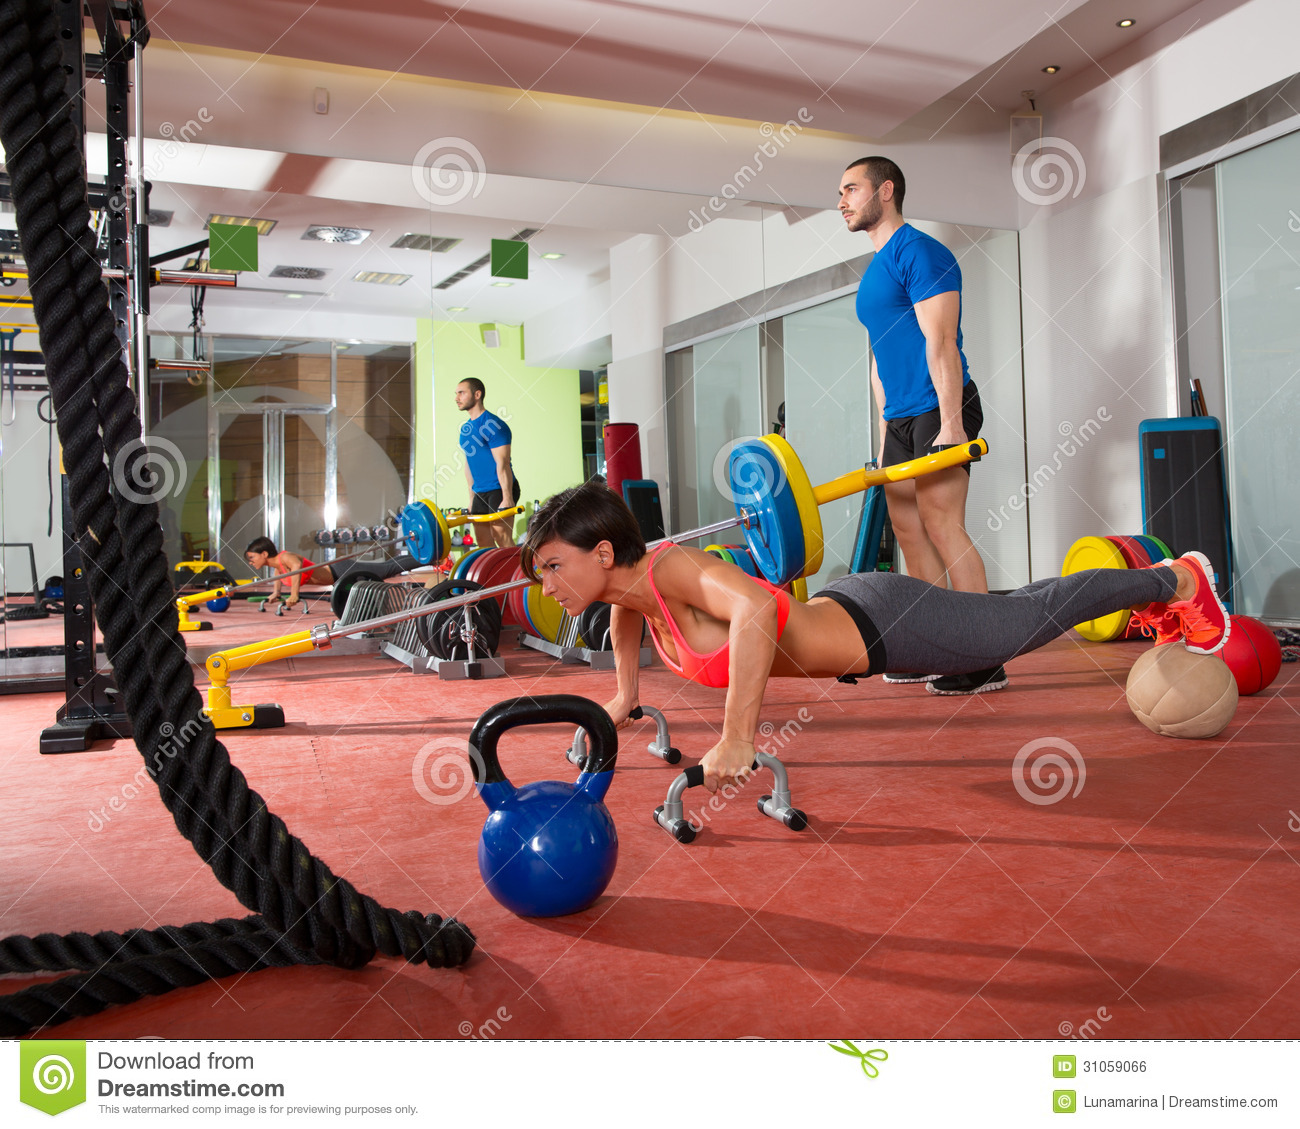 Women S Crossfit Workouts: Crossfit Woman Push Ups Exercise And Man Weight Lifting